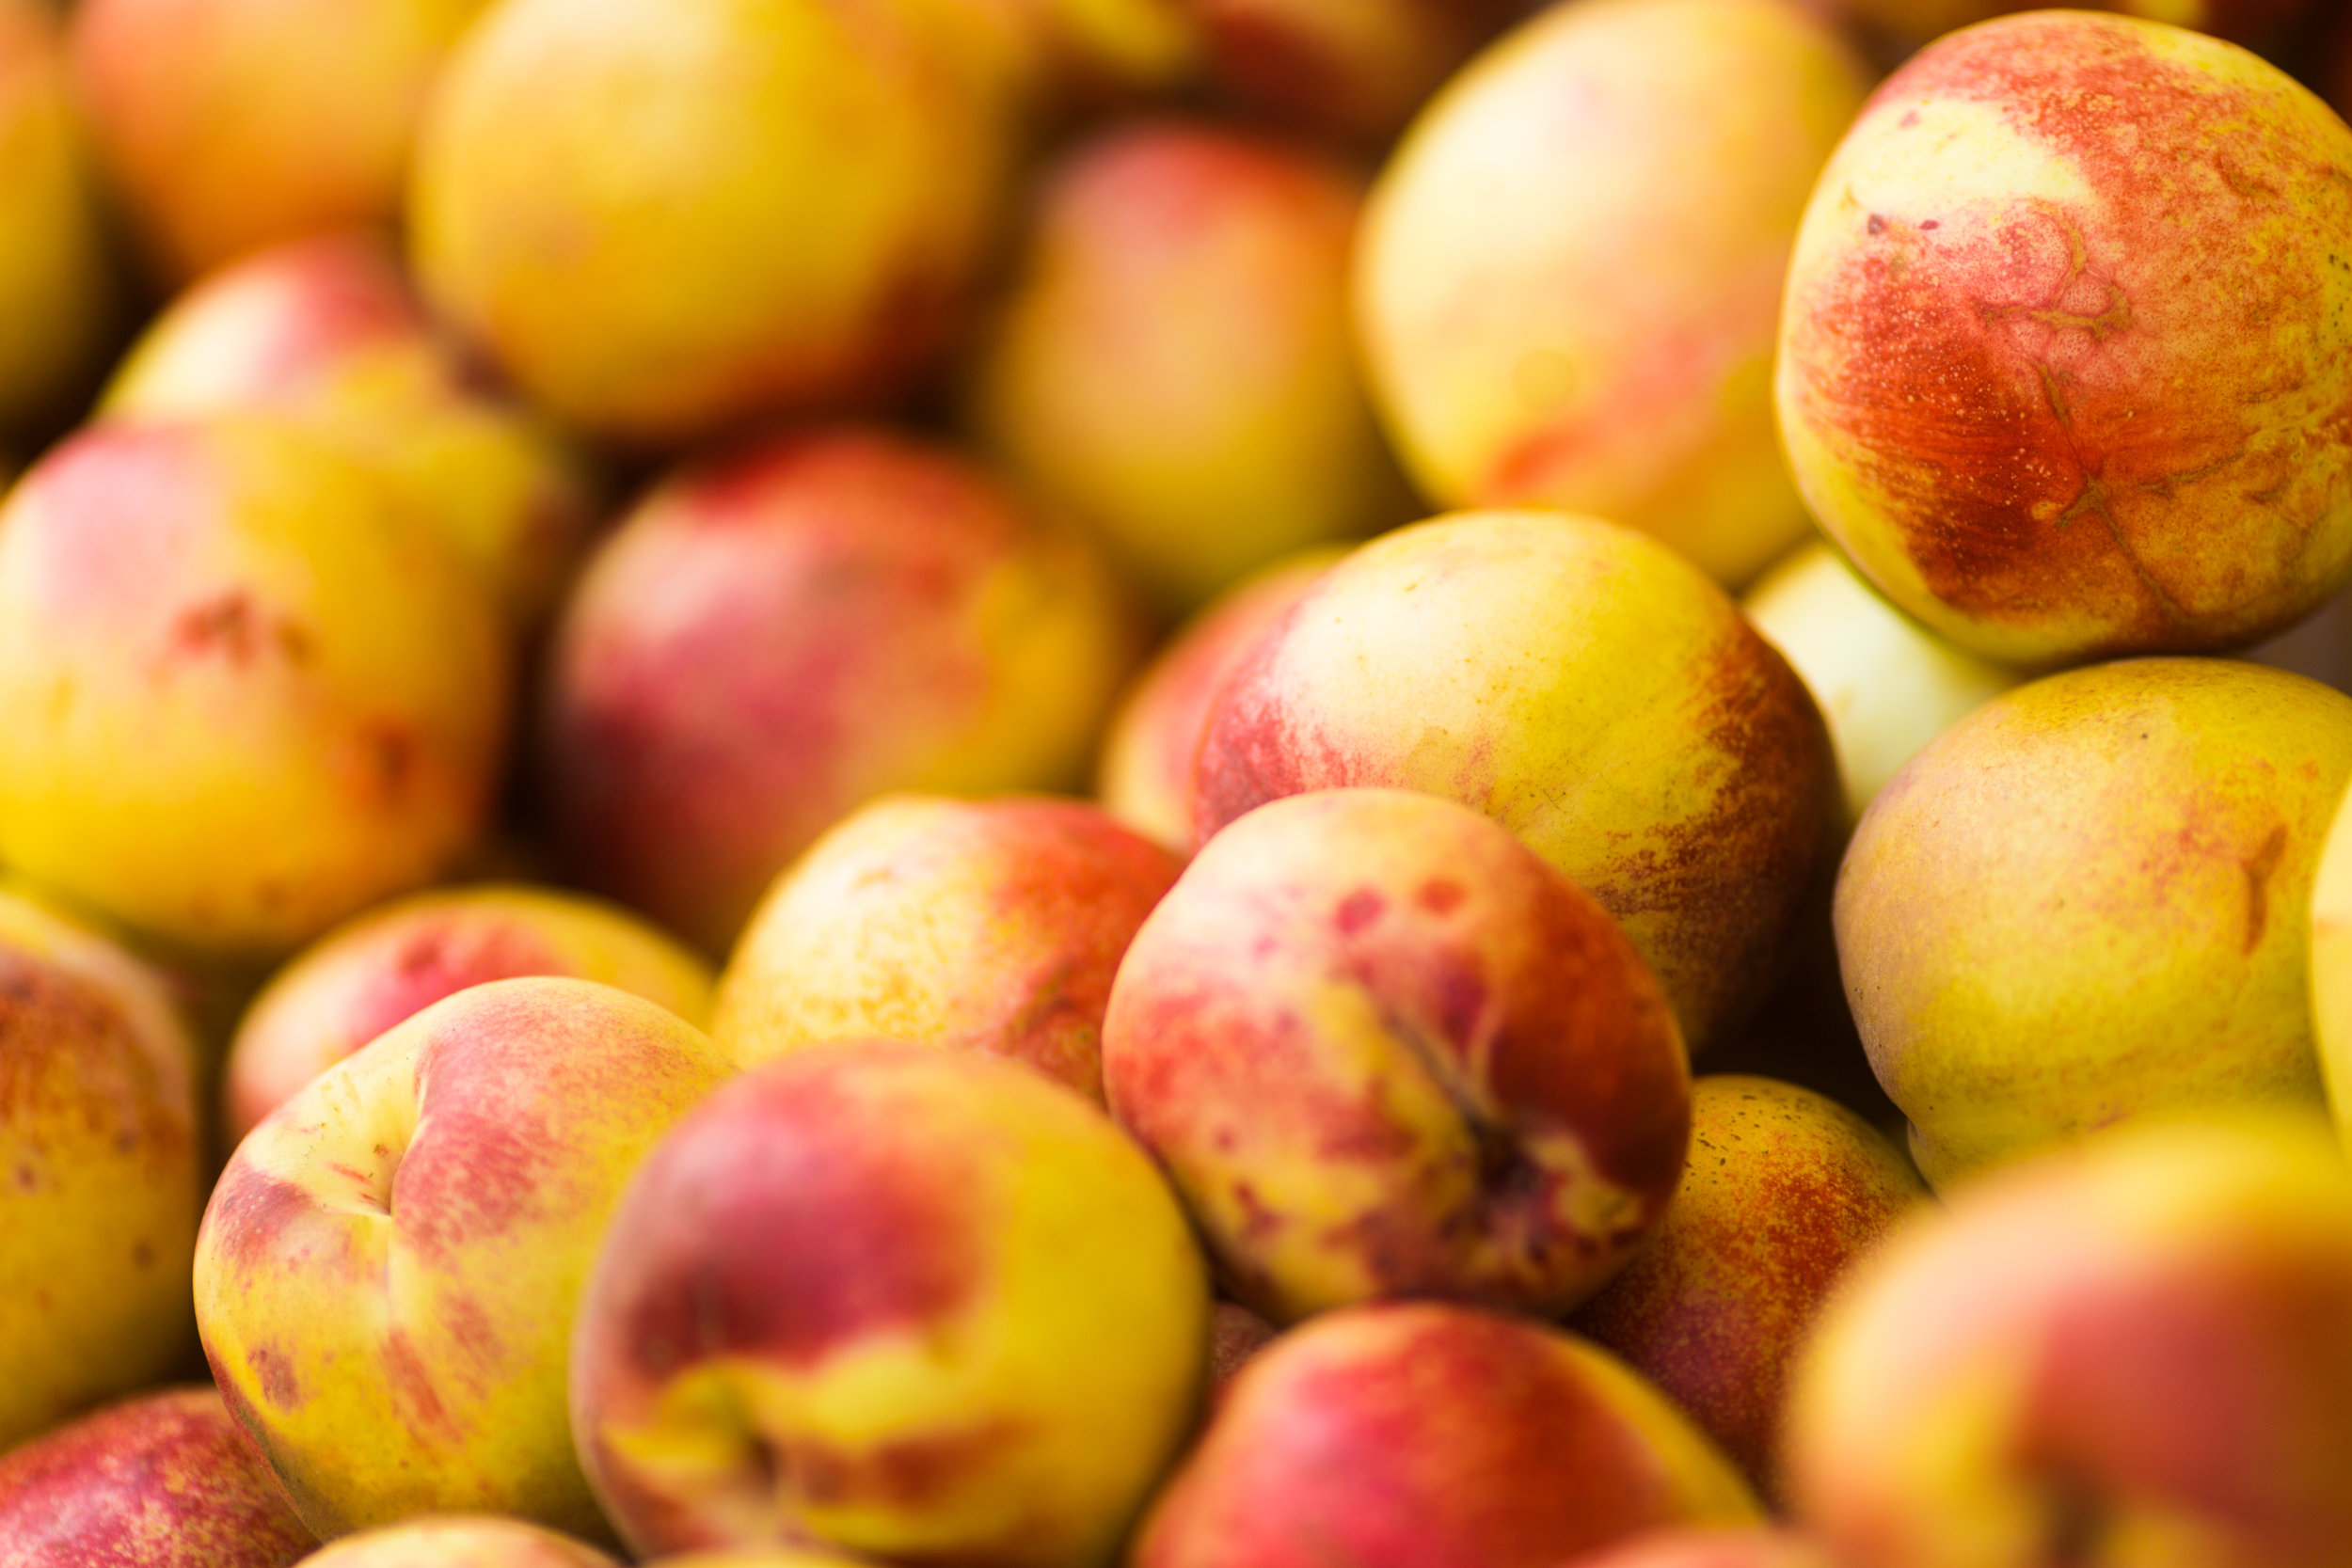 nectarines - Nearly 94 percent of nectarine samples contained two or more pesticides.One sample of conventionally grown nectarines contained residues of 15 pesticides.